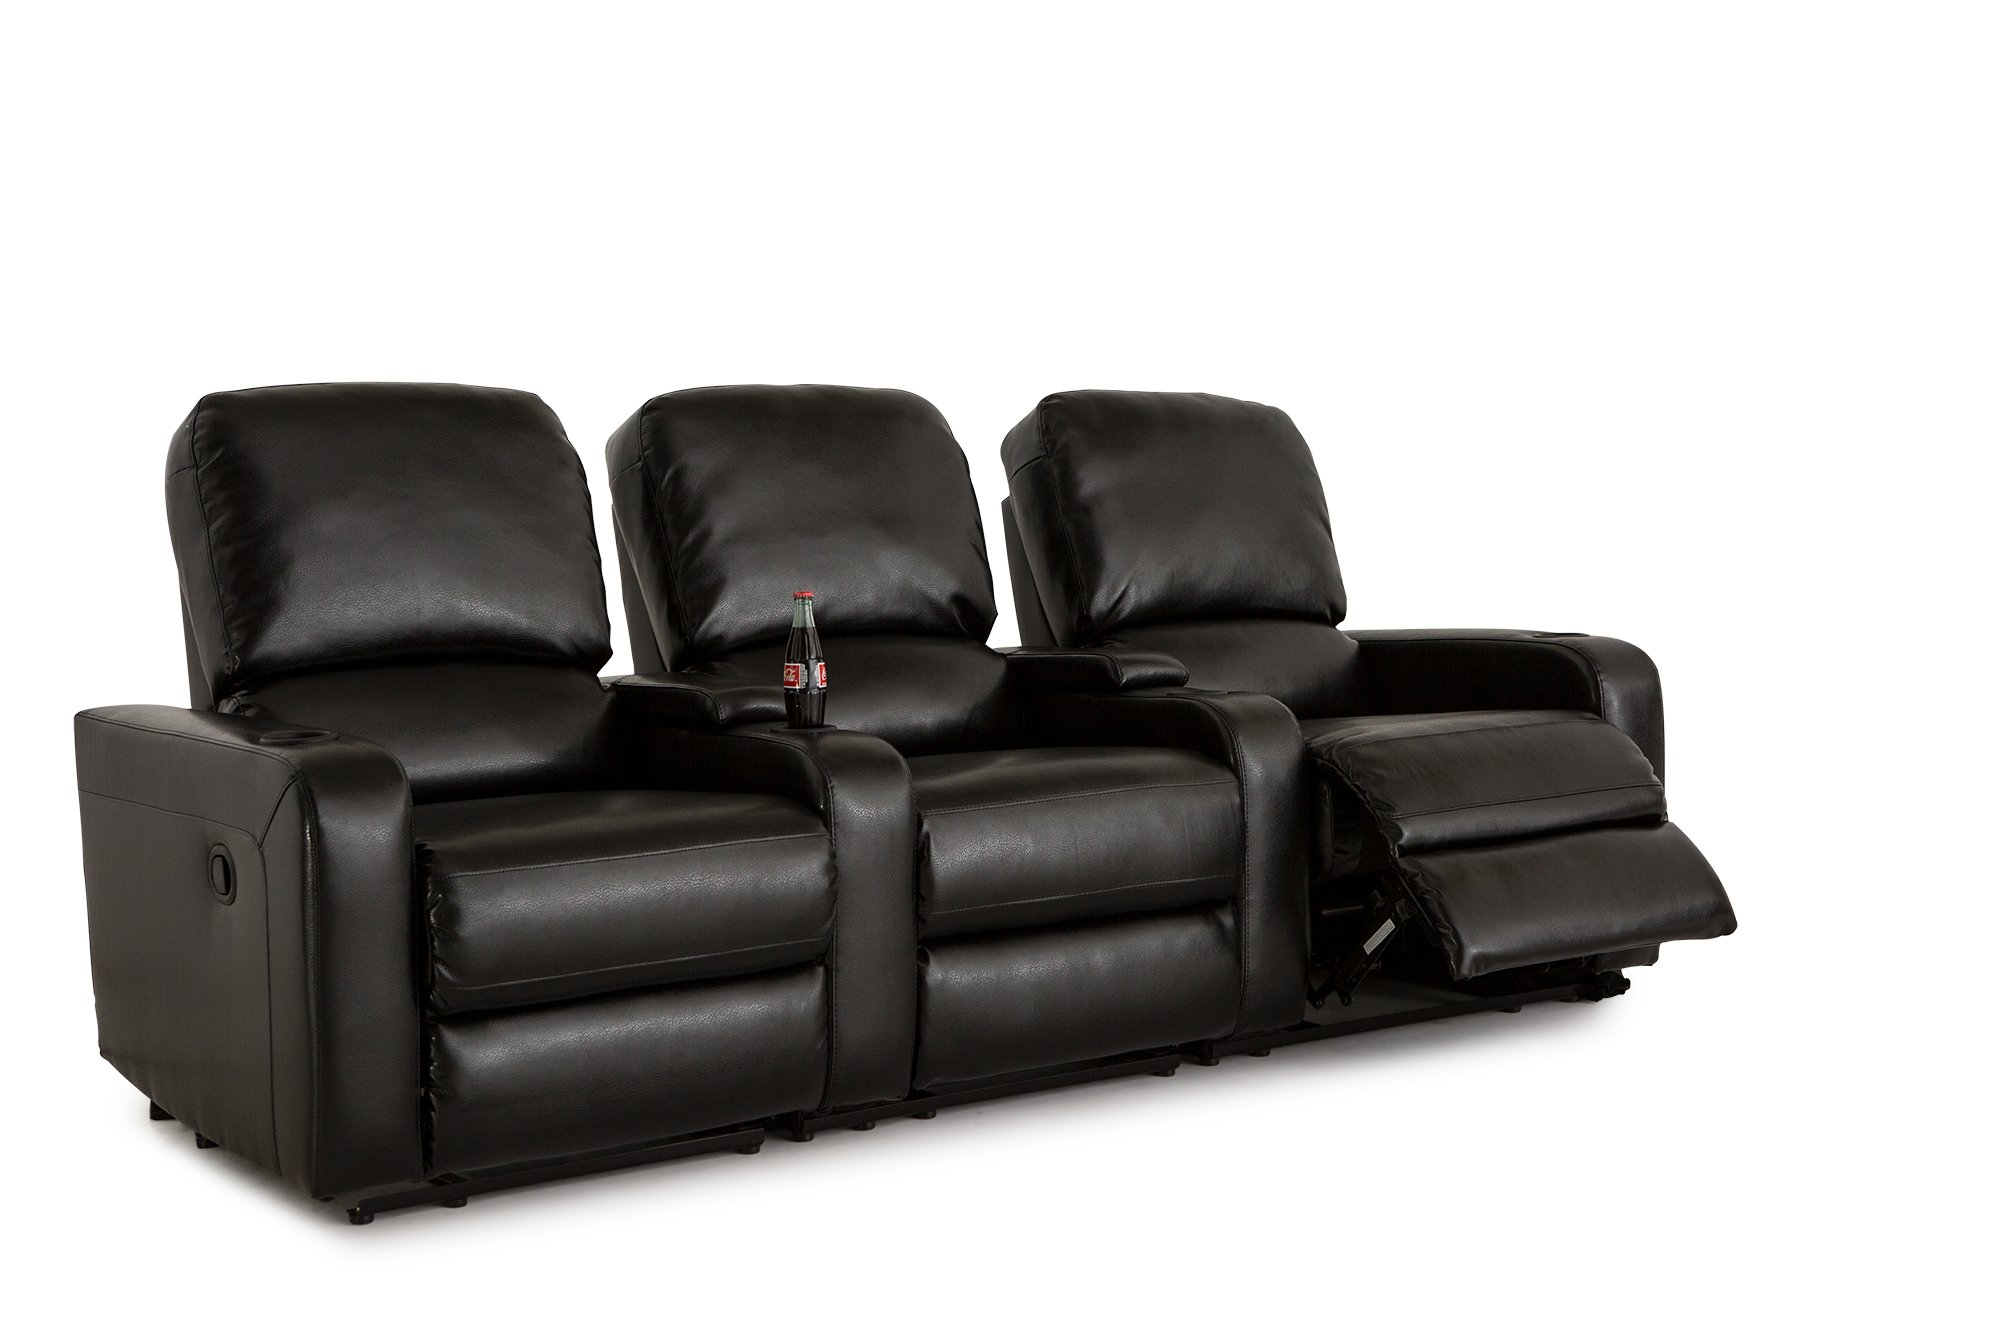 Klaussner Twilight Home Theater Seating Manual Reclinable Bonded Leather Row of 3 with Storage and Cupholders Black by Klaussner